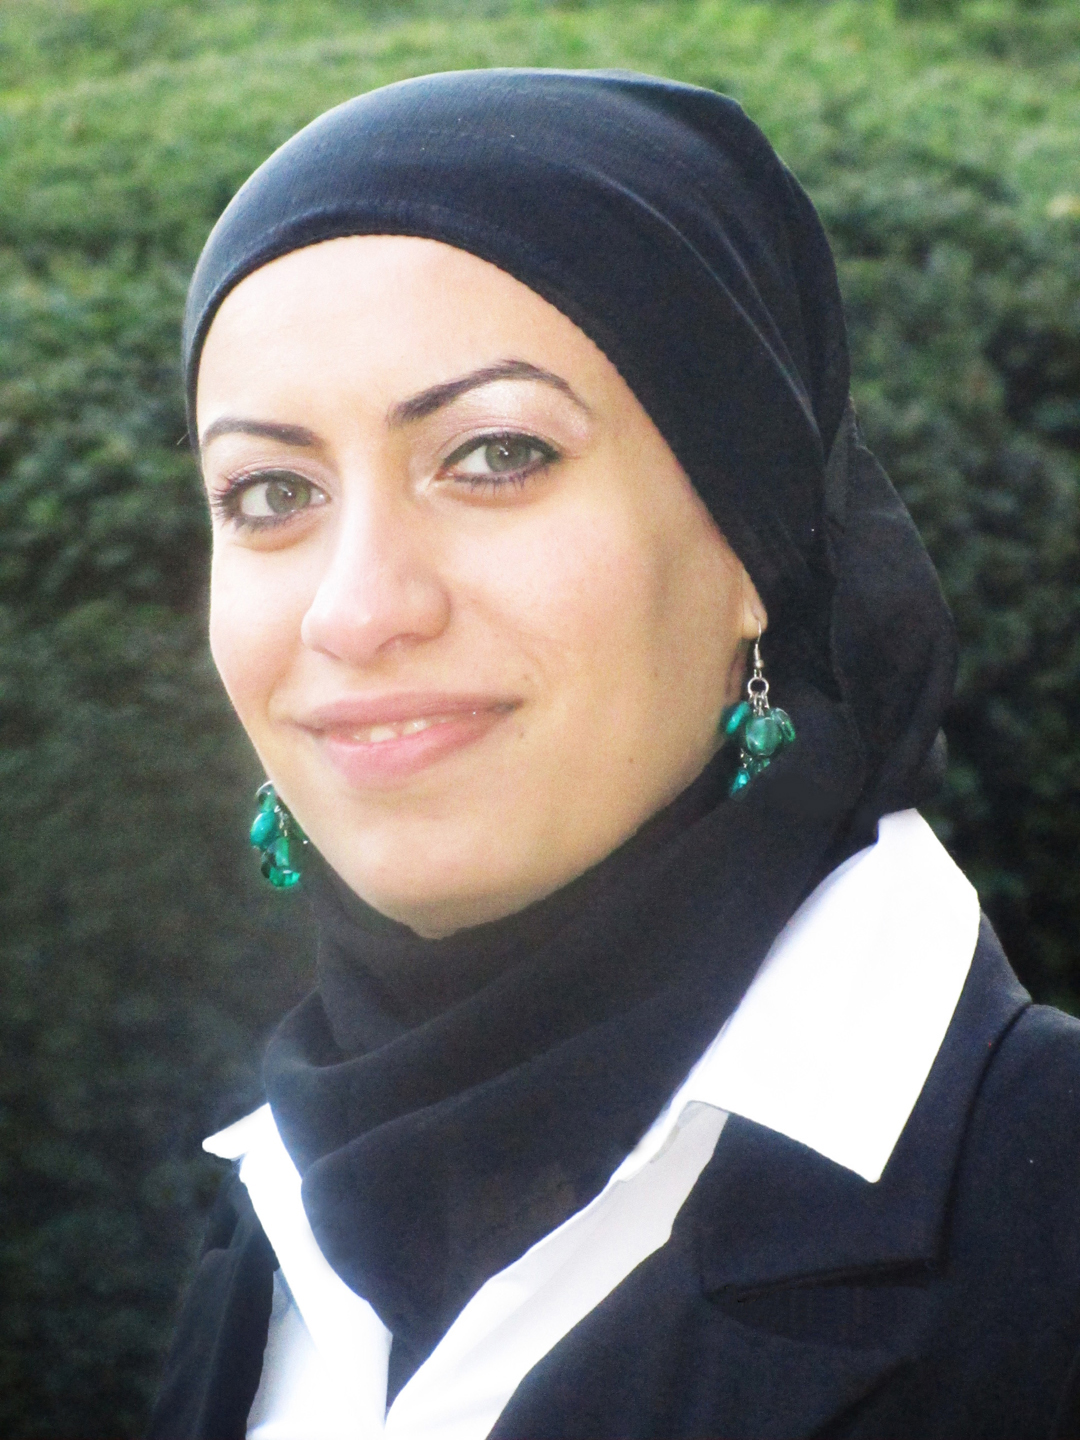 Head shot of Yasmina Raya